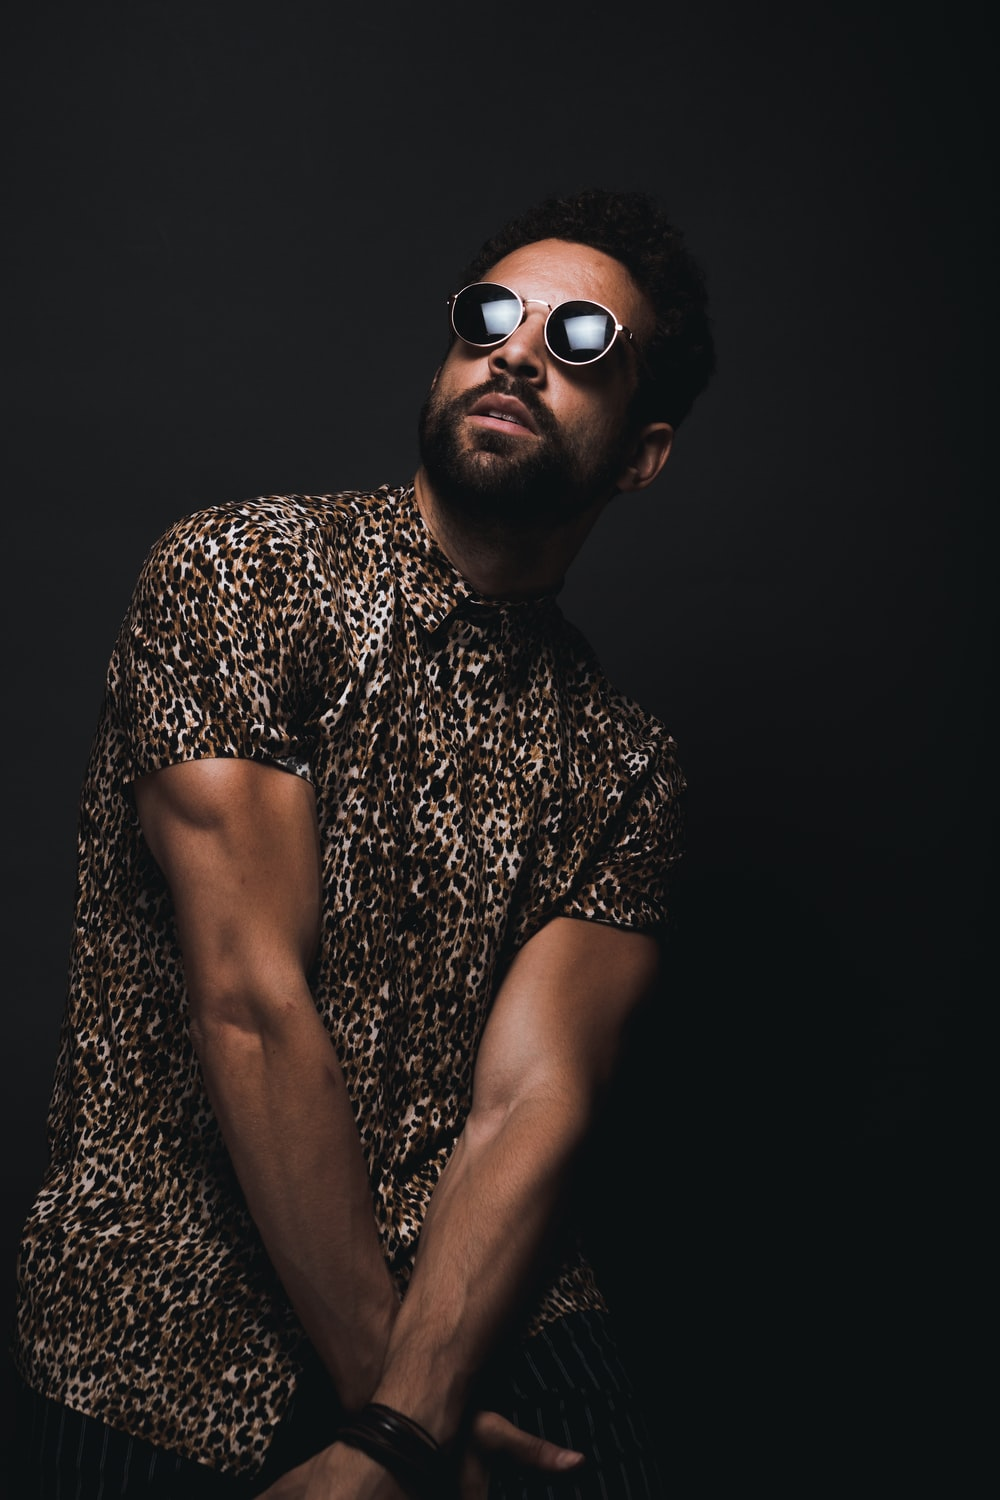 man wearing brown and black leopard print button-up T-shirt and black sunglasses crossing hands down while looking up